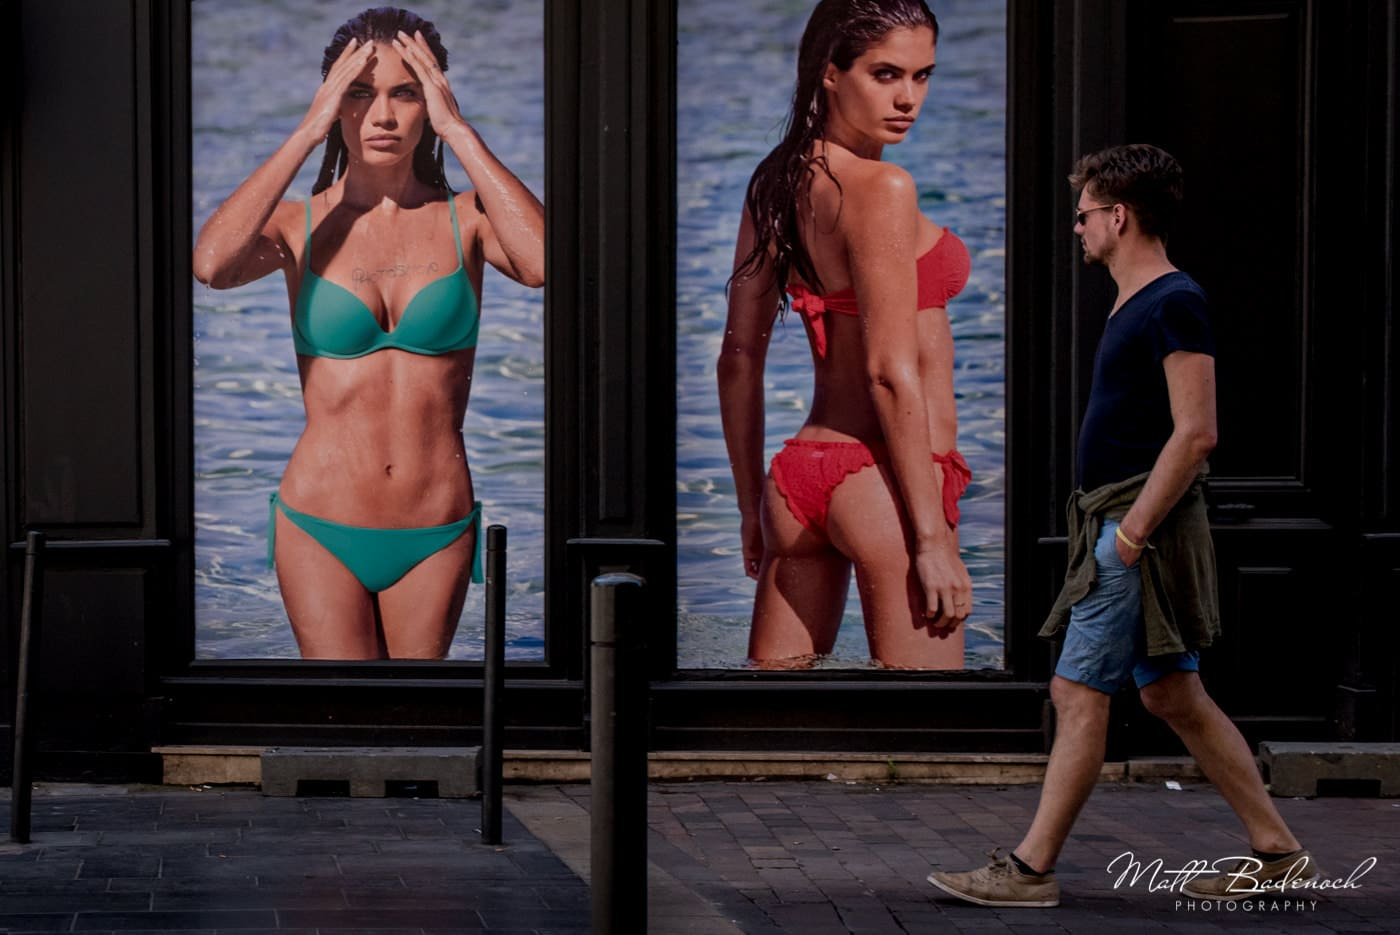 female model posters | bordeaux street photography